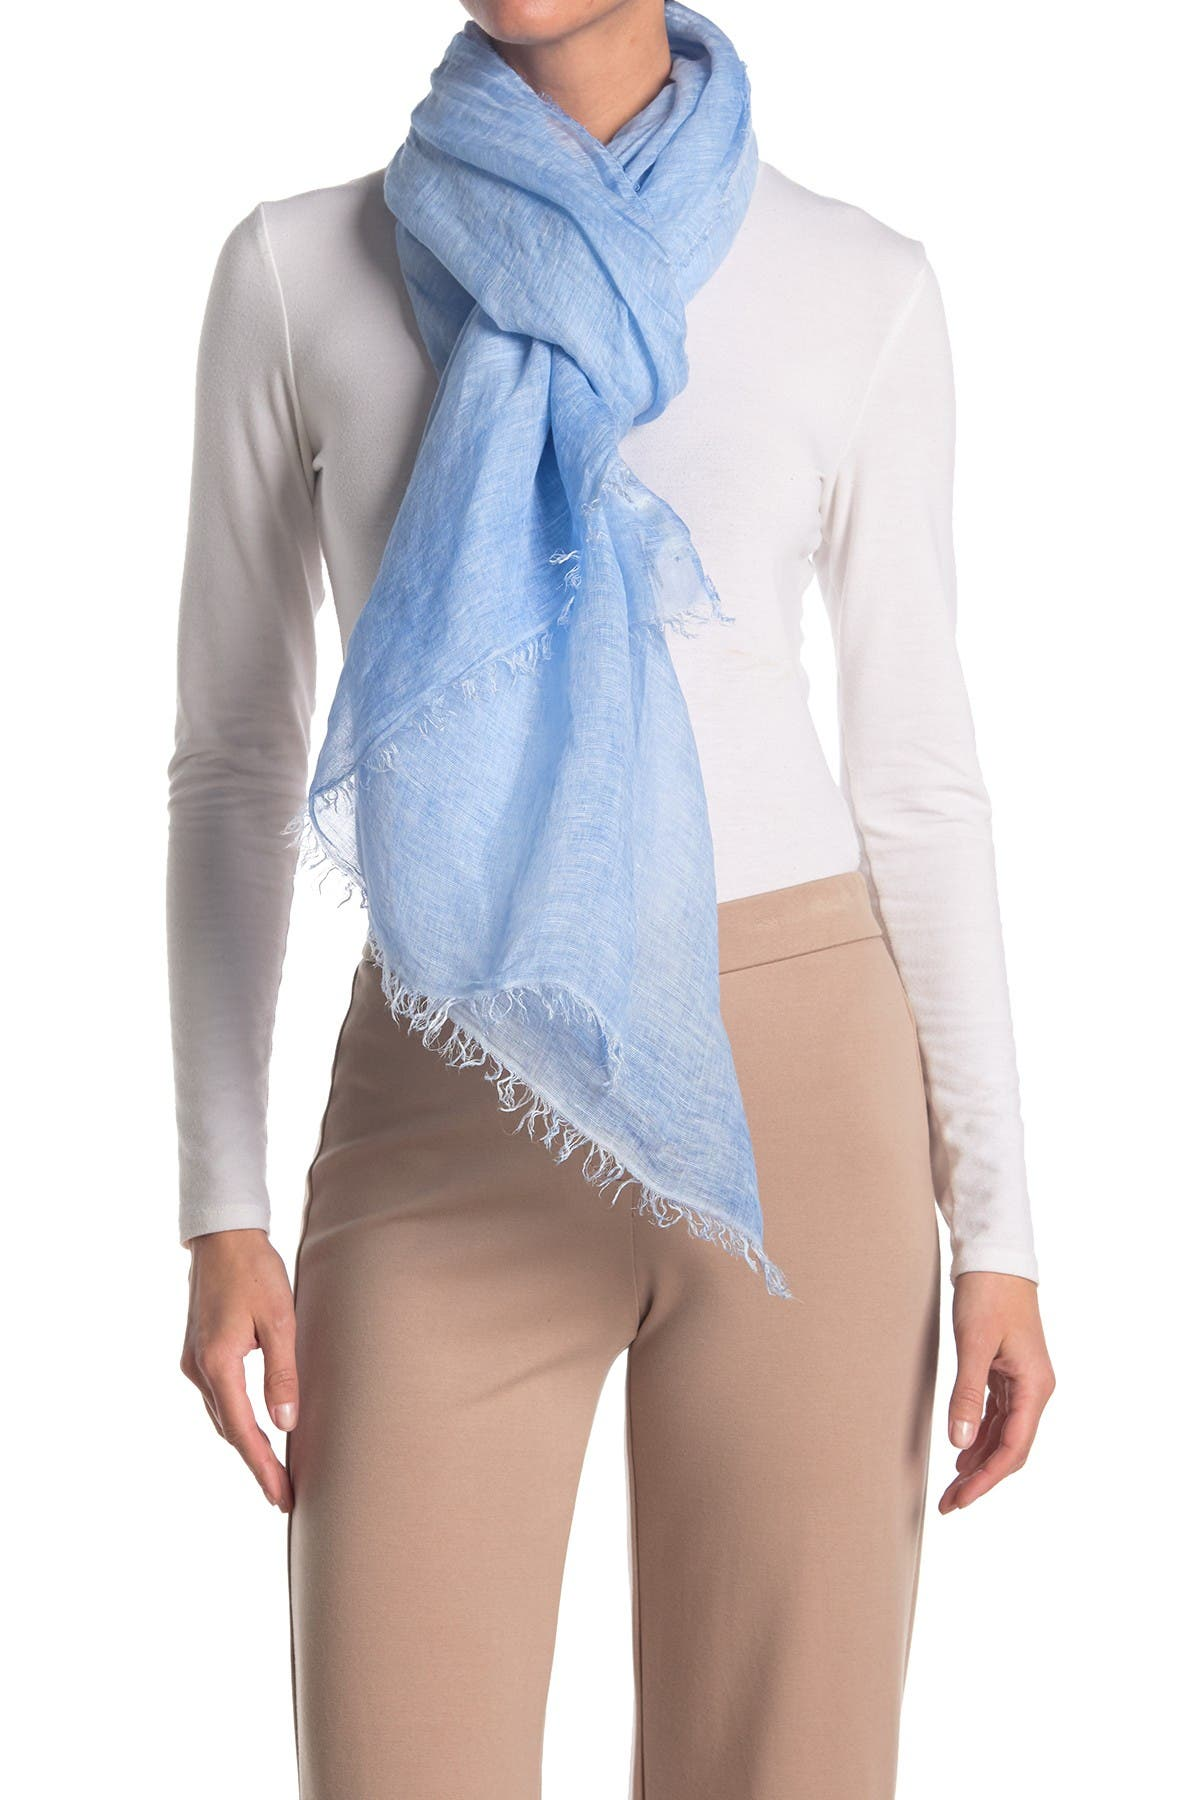 Image of Eileen Fisher Maltinto Modal Organic Linen Scarf